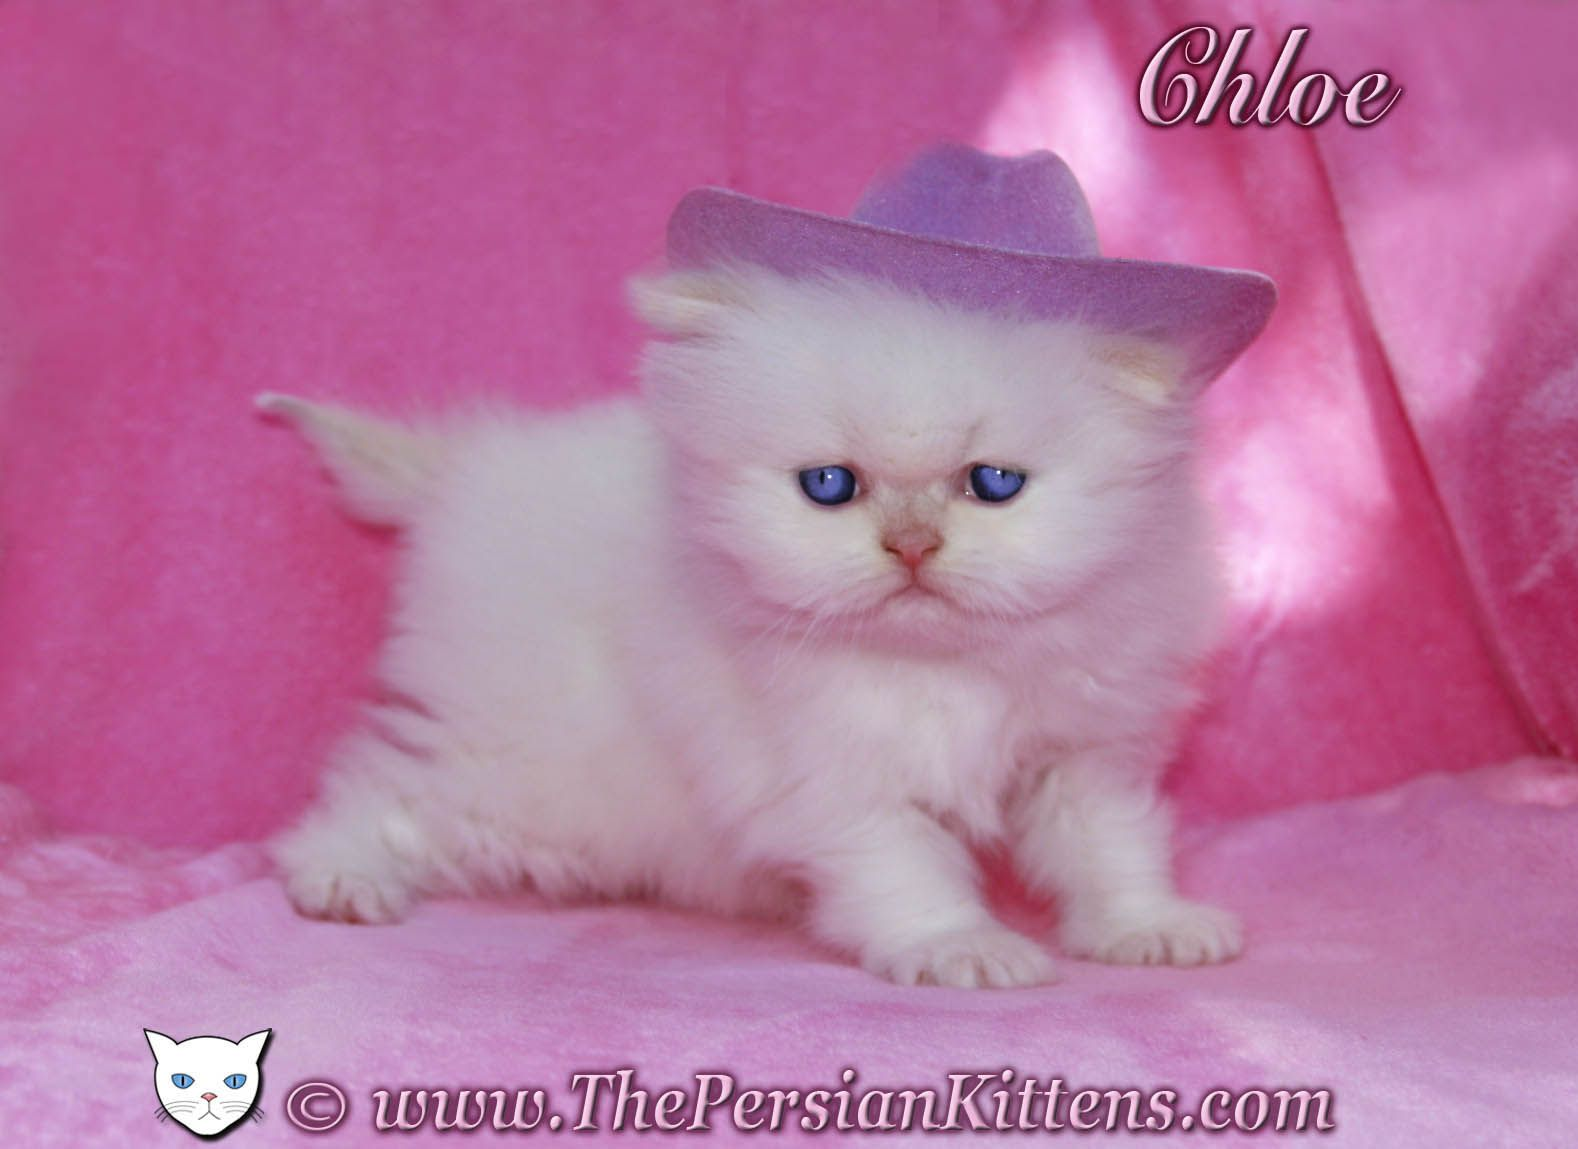 This Is What God Gives Us Watch This Video Http Www Godfruits Com This Tiny Kitten With Big Eyes Looks Like A Kittens Cutest Persian Kittens Kitten Pictures